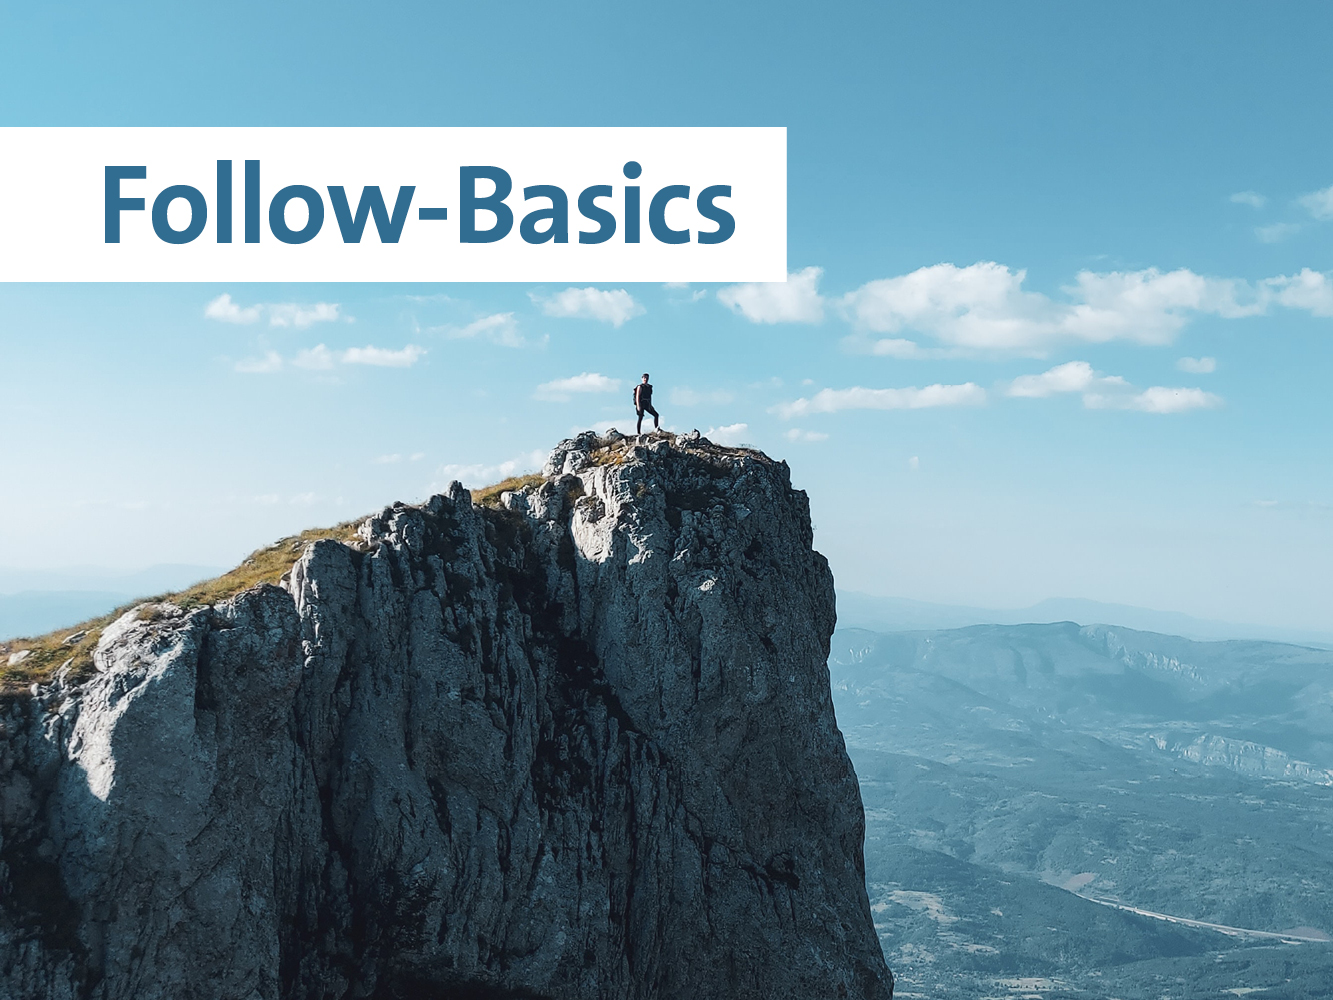 Follow-Basics